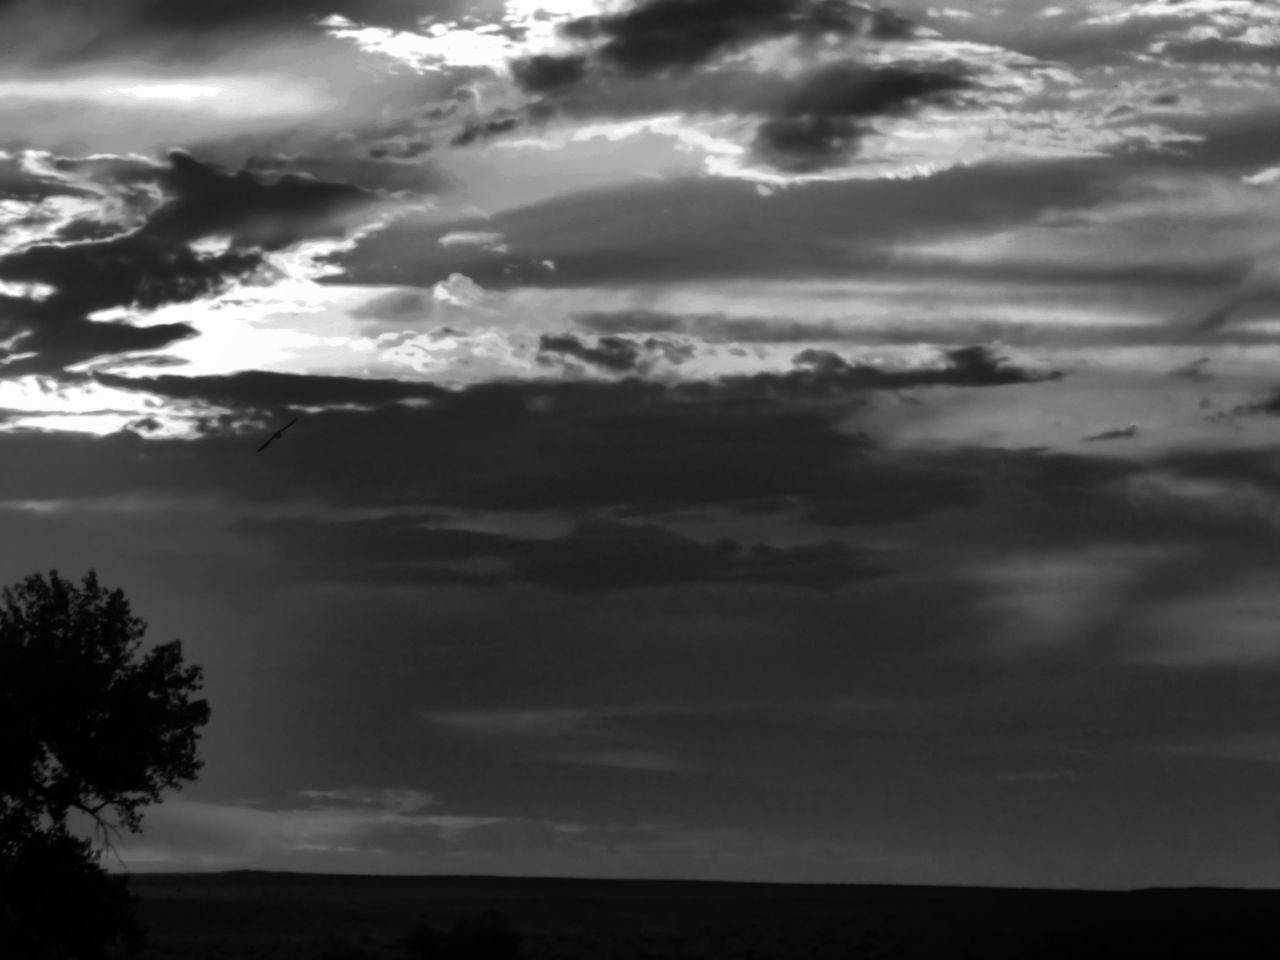 sky, cloud - sky, nature, tranquility, scenics, tranquil scene, beauty in nature, silhouette, no people, landscape, outdoors, tree, storm cloud, day